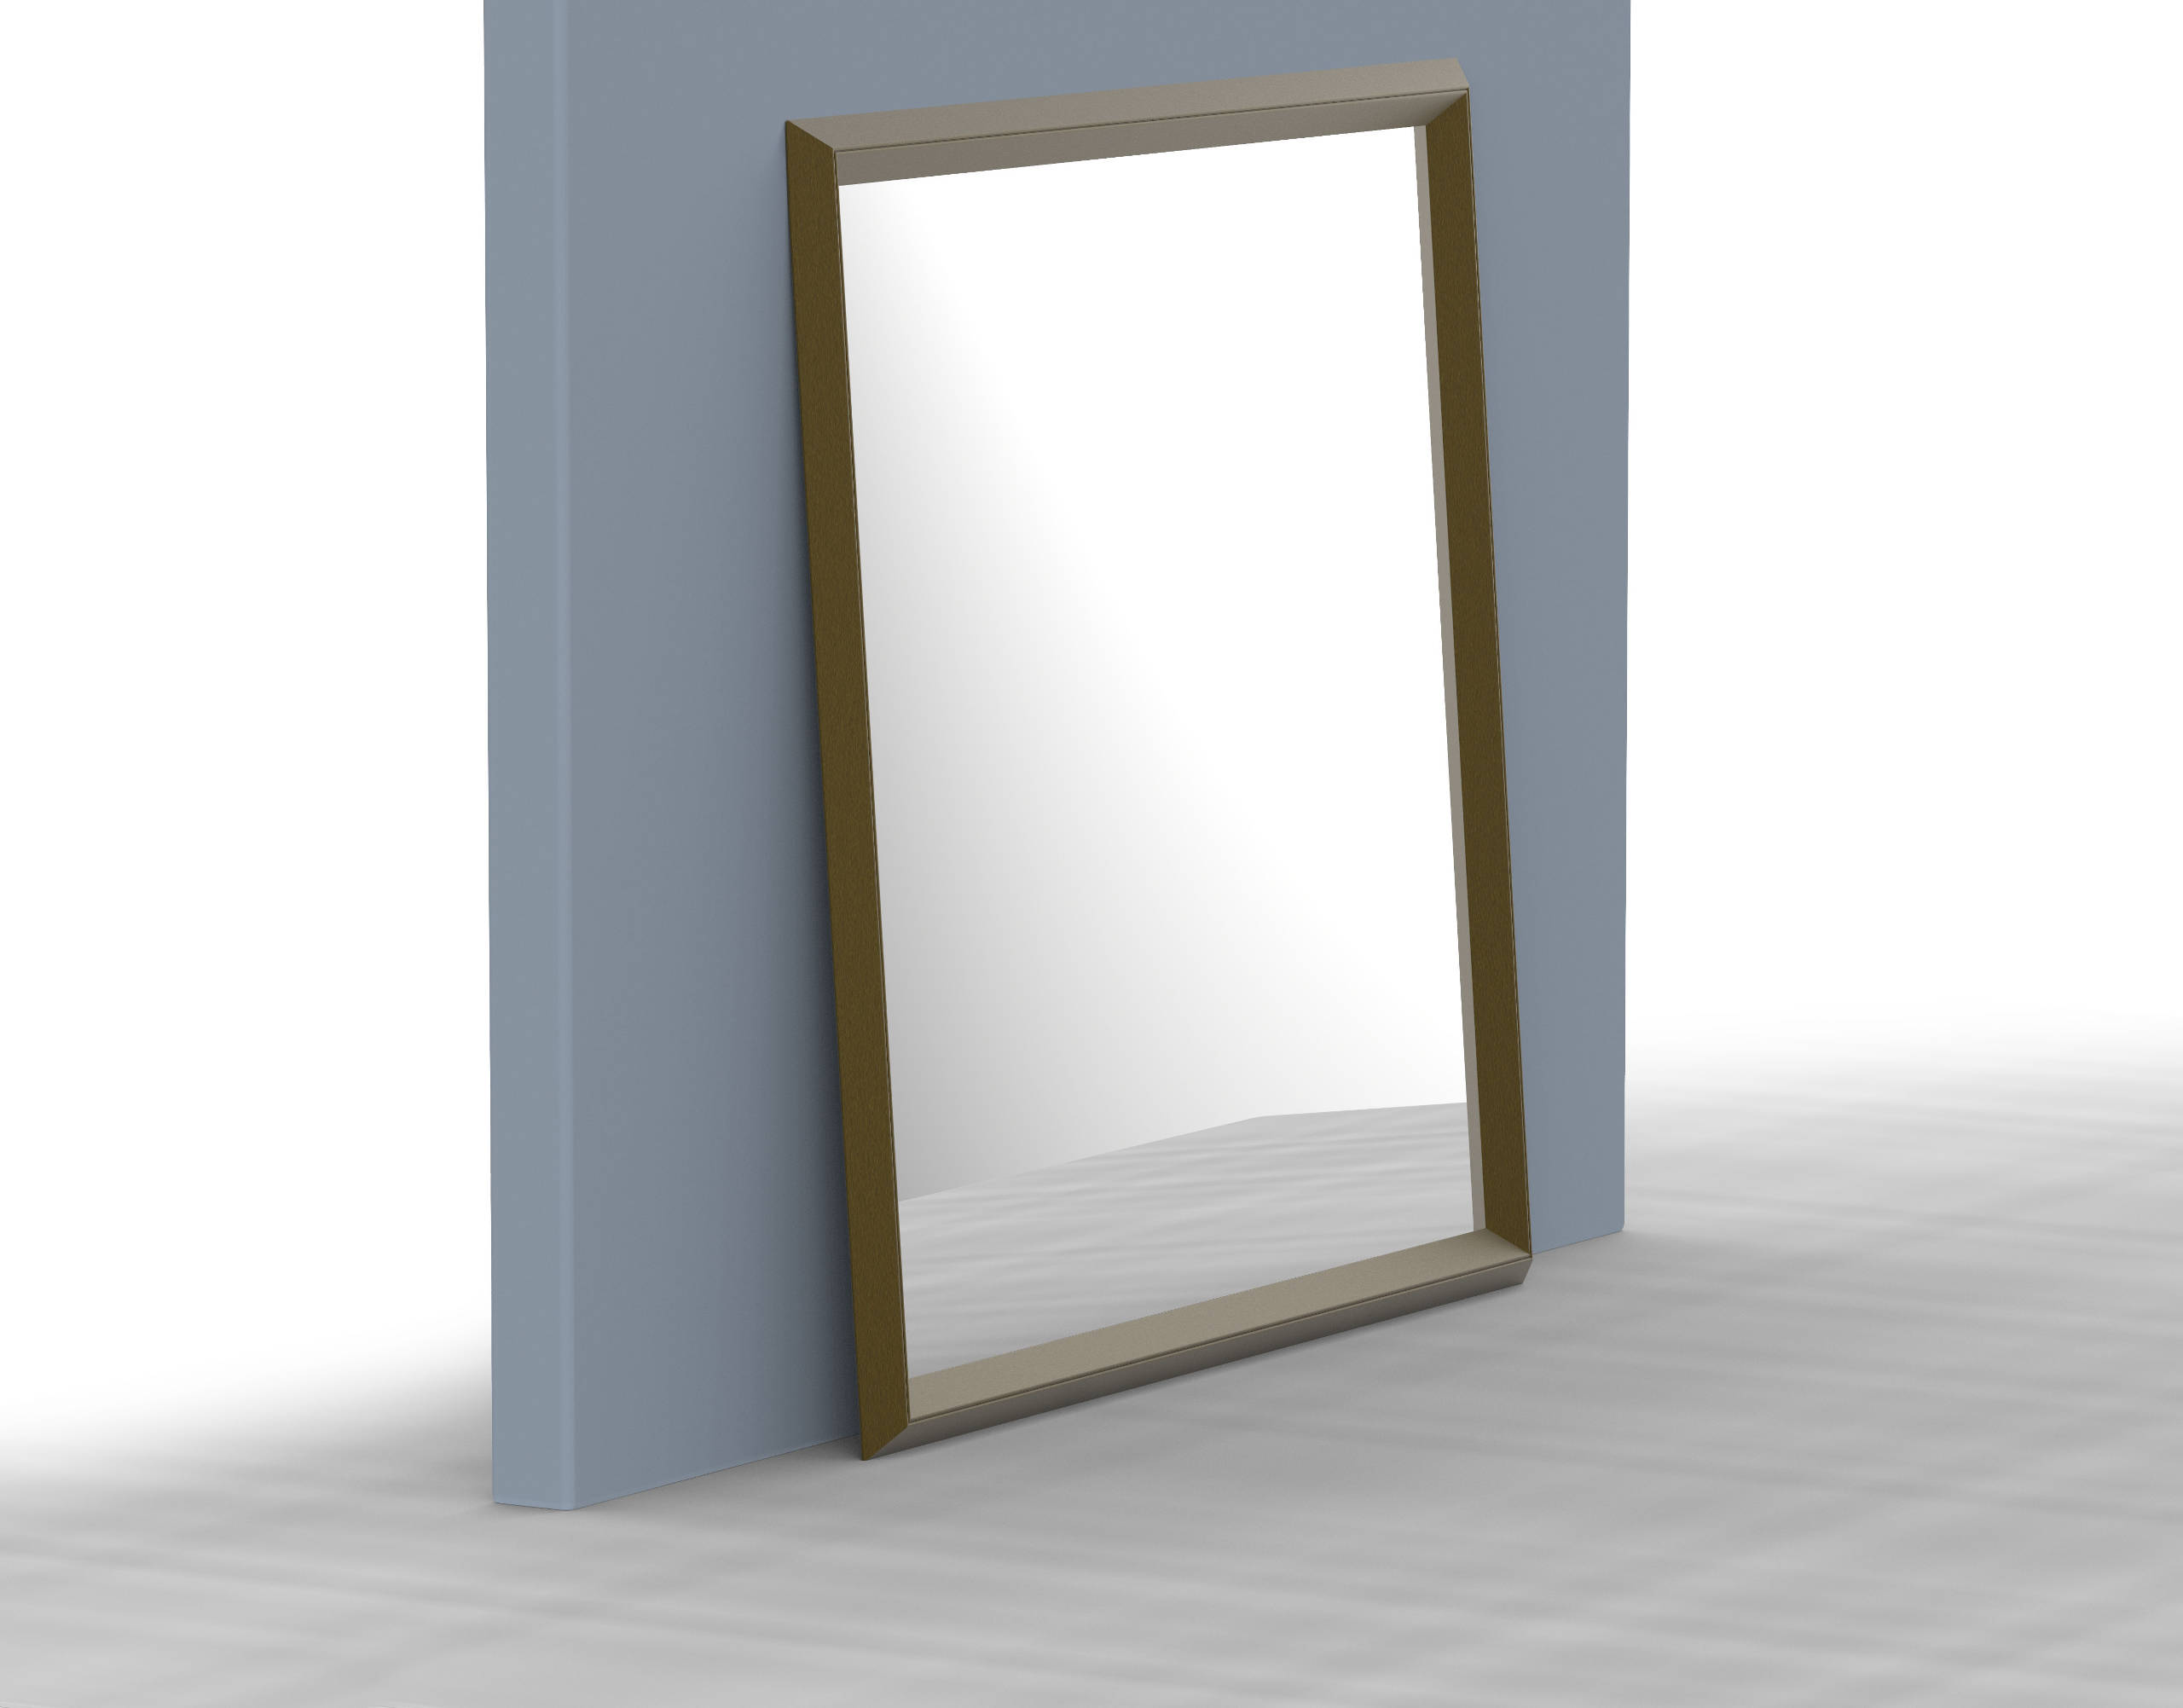 Albedo Design DOUBLE mirror with metal frame